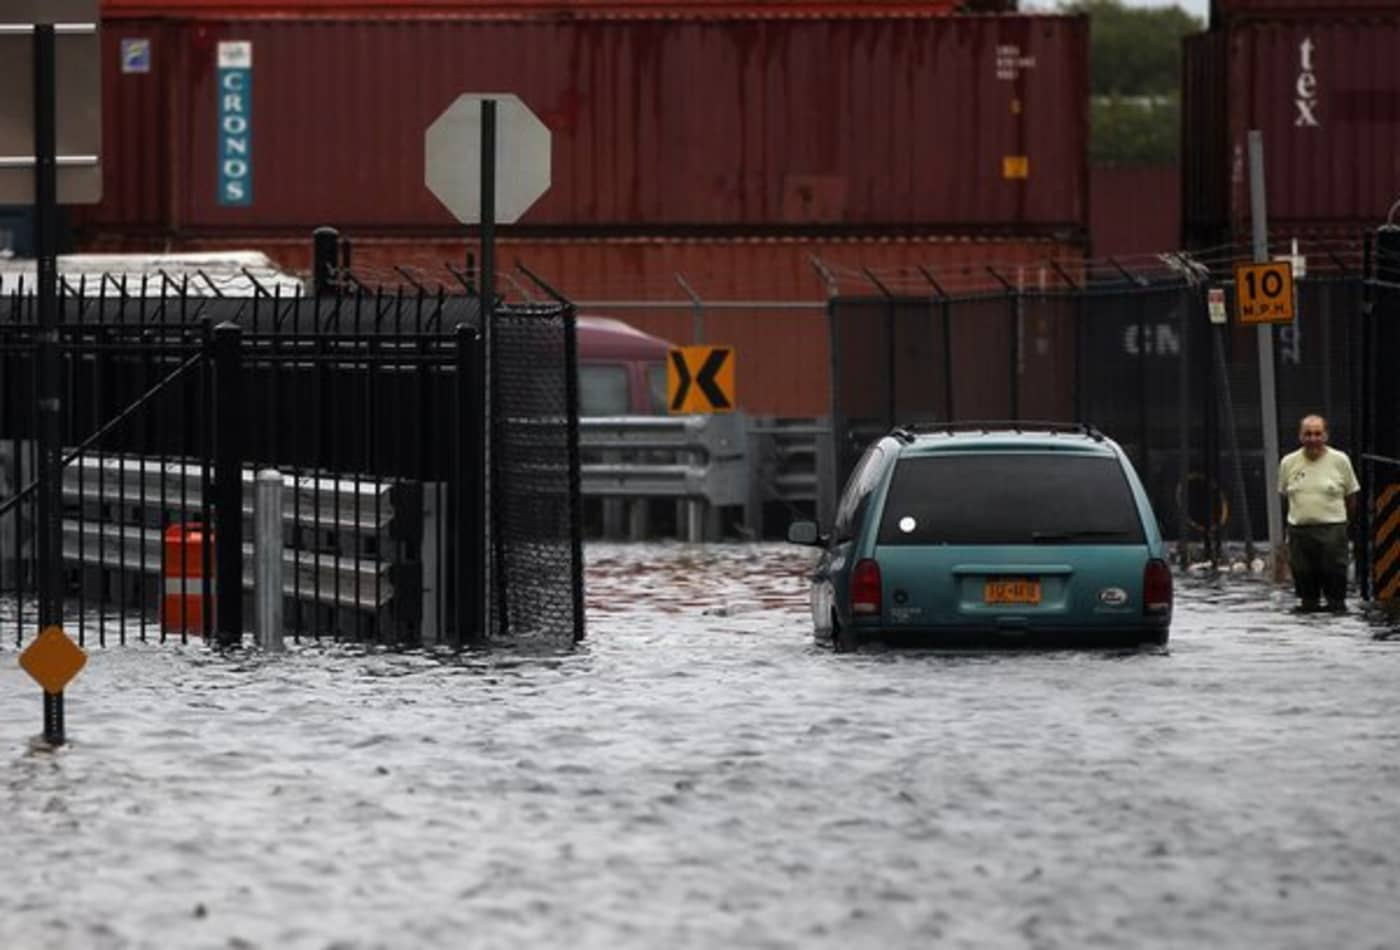 Irene_AUG28_NY5_redhook_flood.jpg